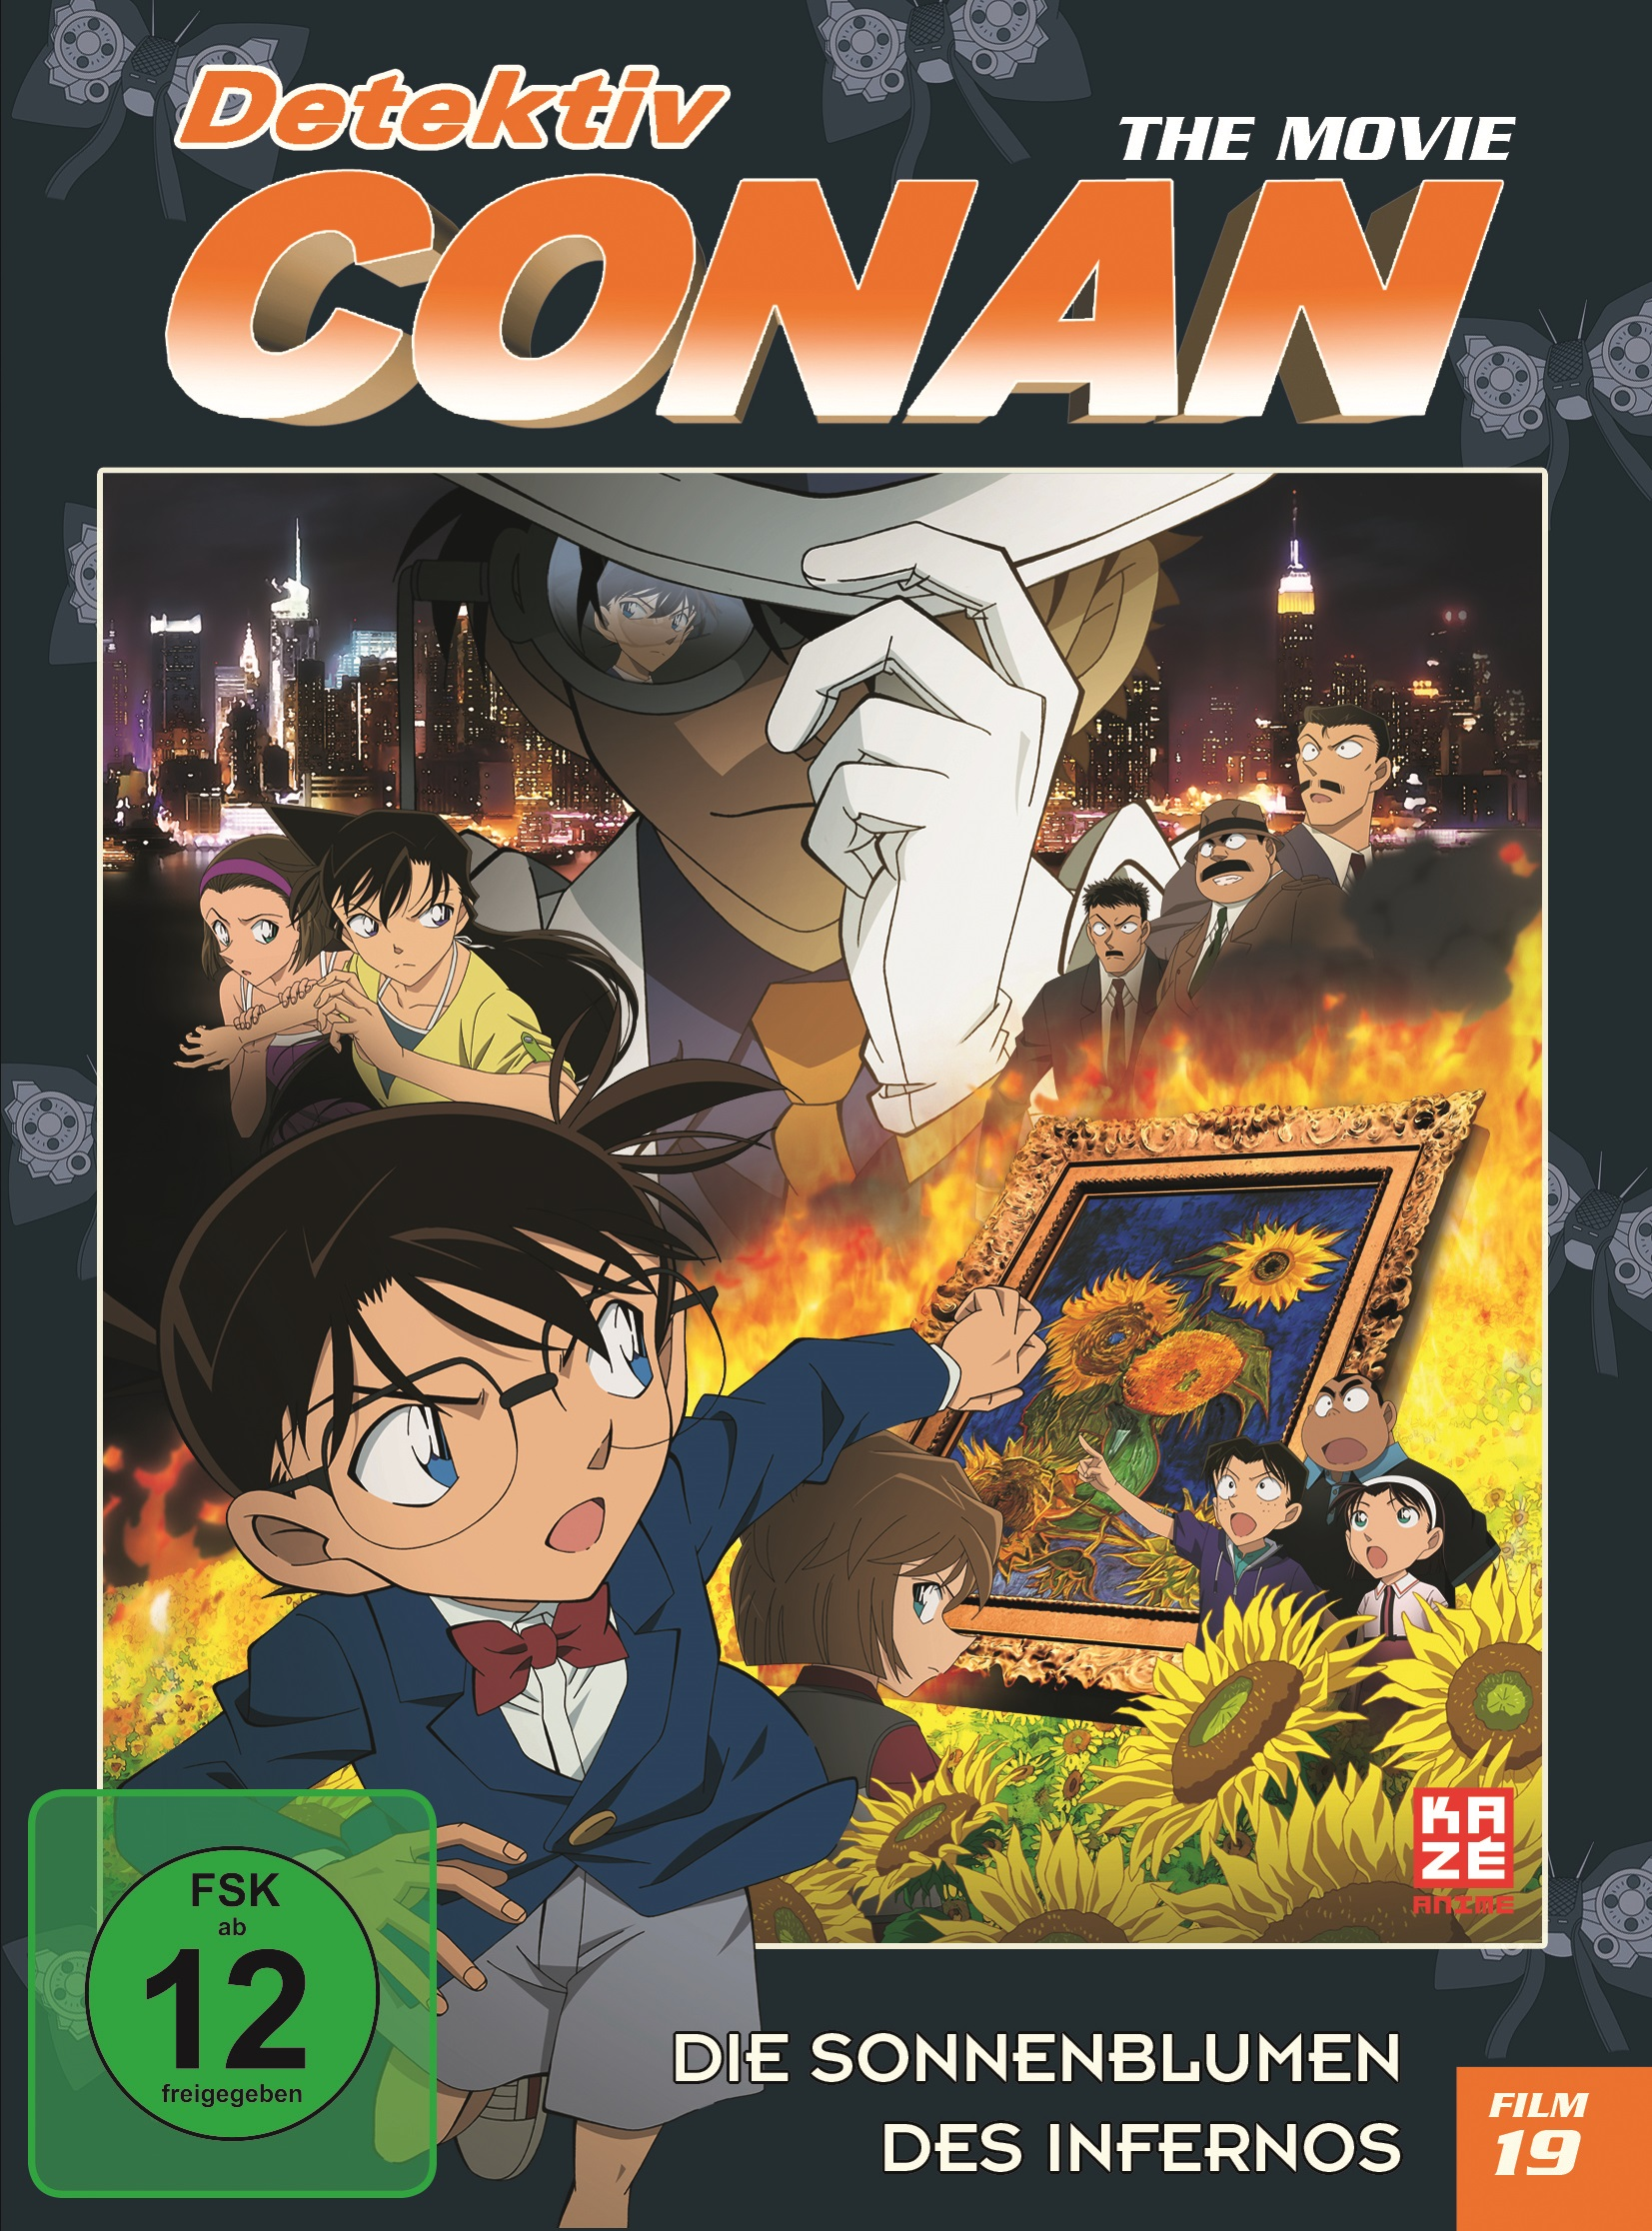 Detektiv Conan Movie 19